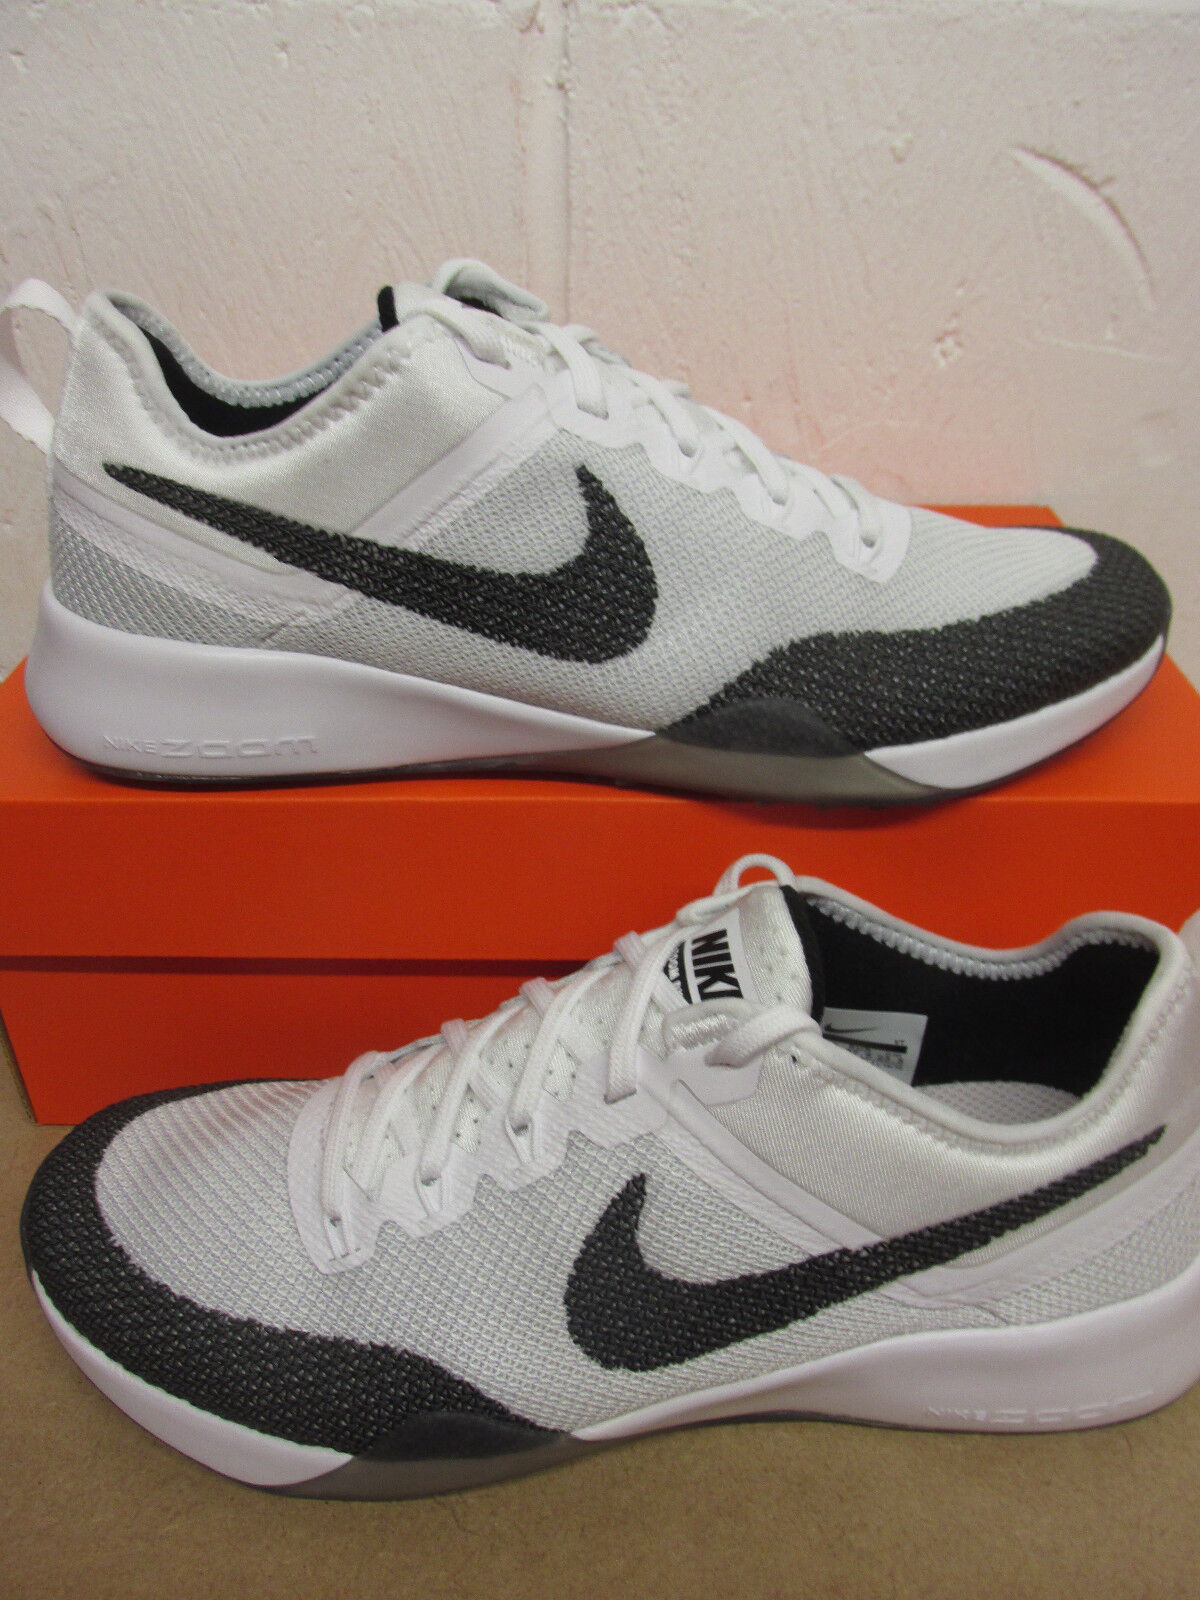 Nike Womens Air Zoom TR Dynamic Running Trainers 849803 100 Sneakers Shoes best-selling model of the brand